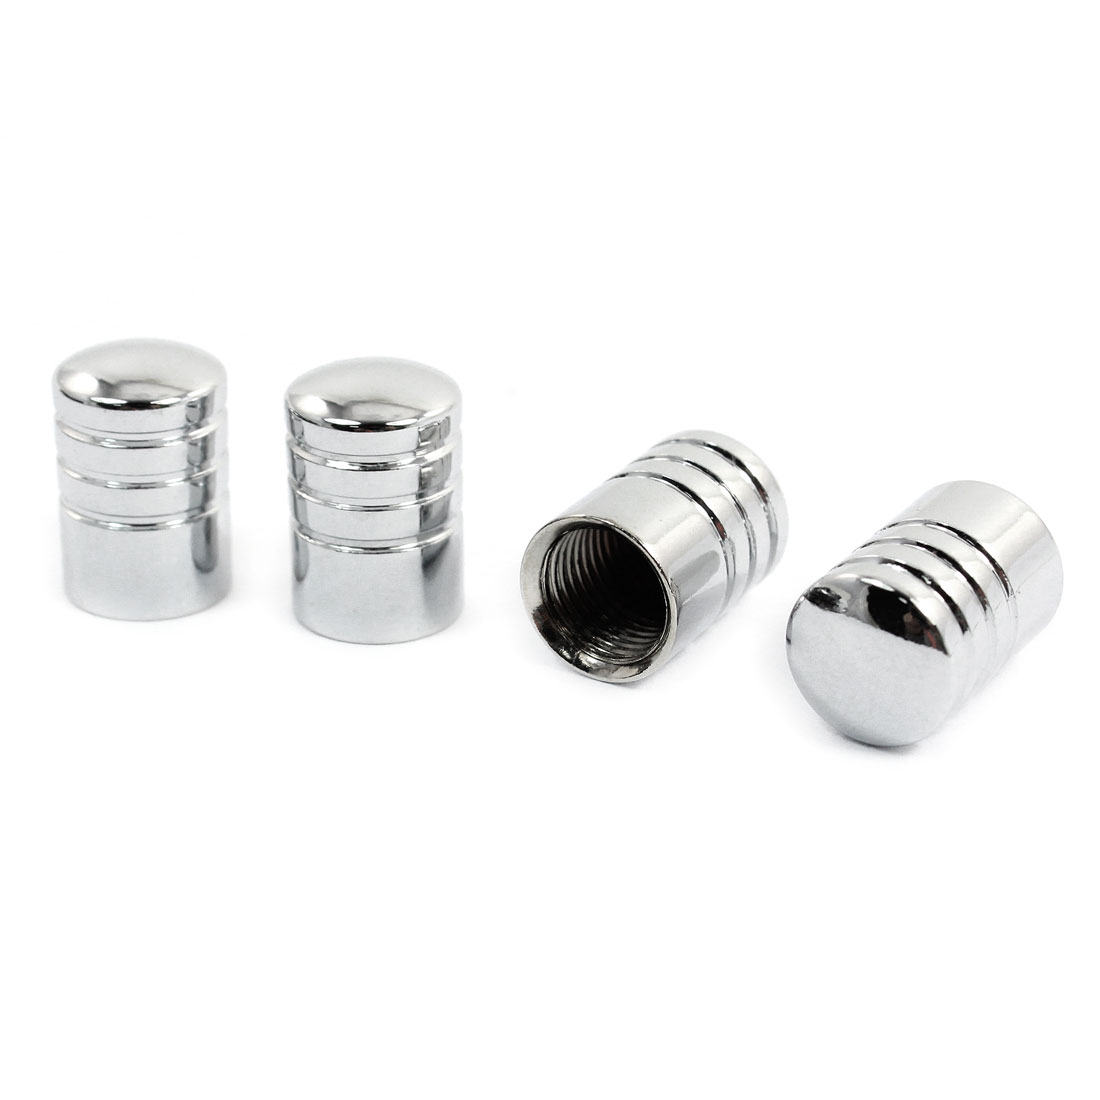 4 Pcs Car Silver Tone Cylinder Shape Tire Tyre Valve Stem Protectors Covers 8mm Inner Dia